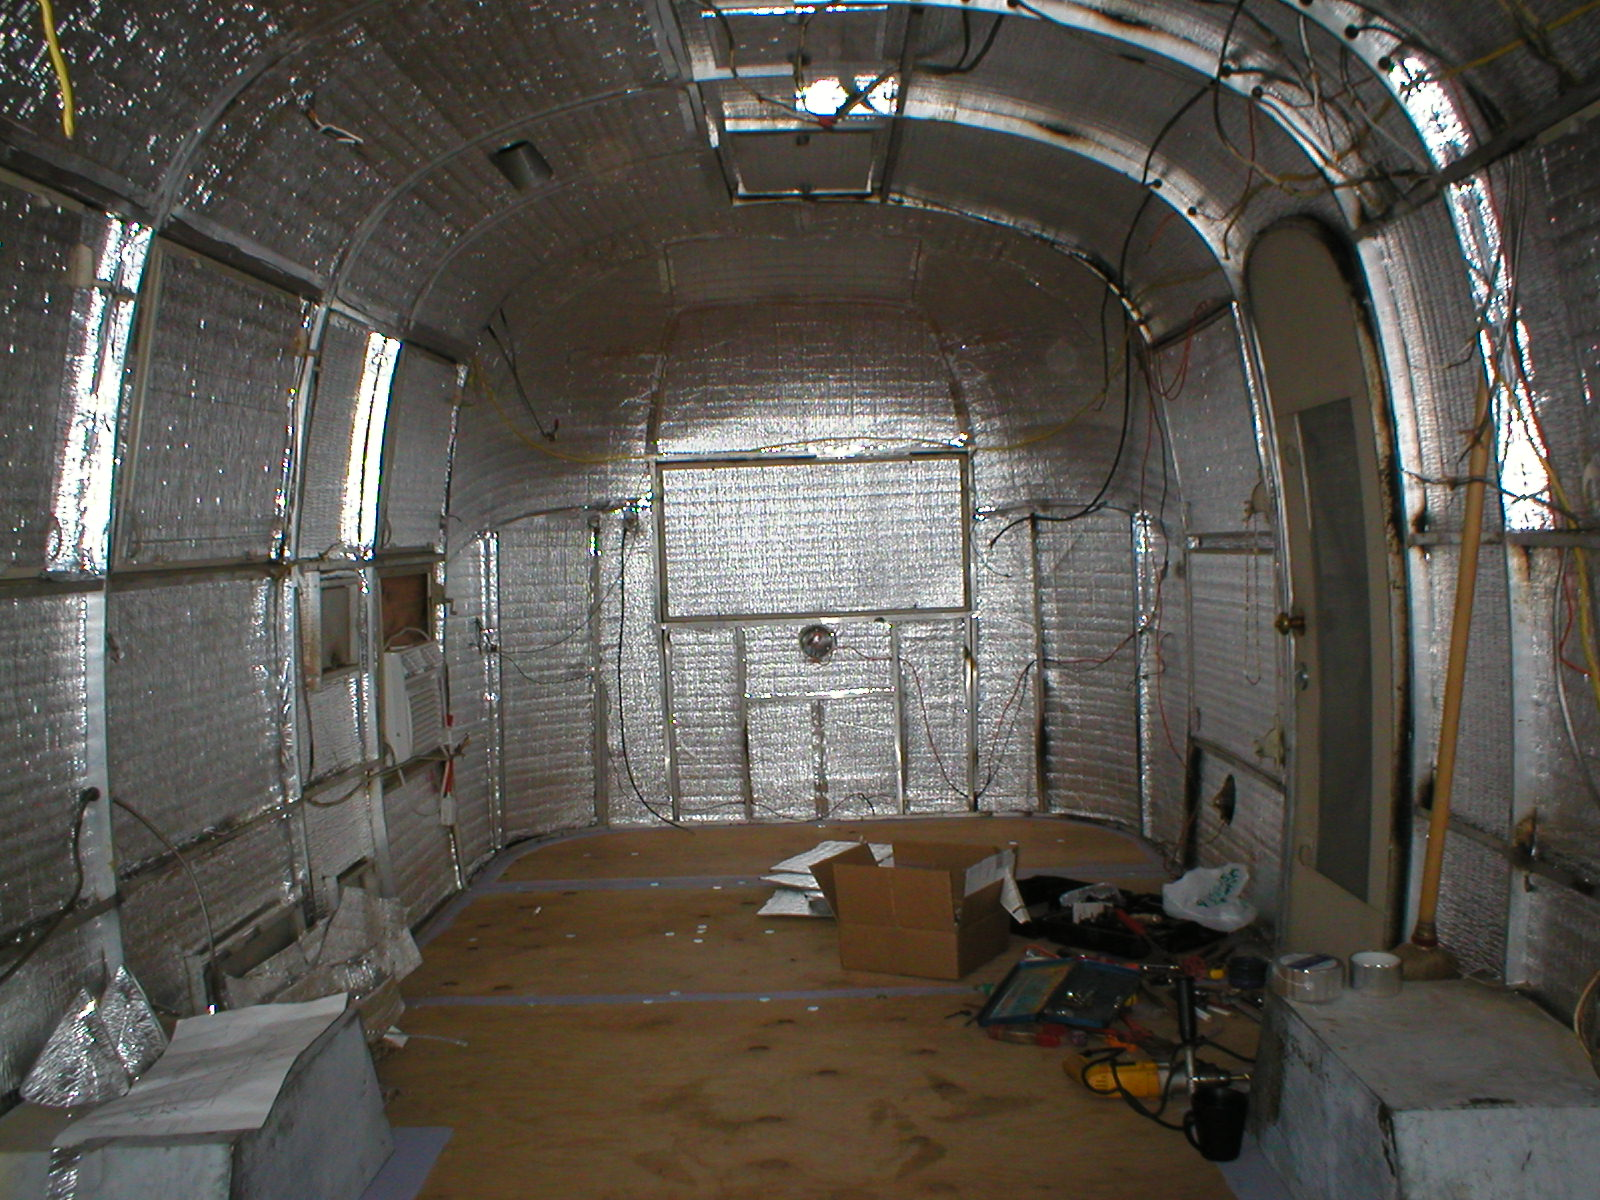 Click image for larger version  Name:Copy (2) of insulation.jpg Views:98 Size:407.2 KB ID:87244